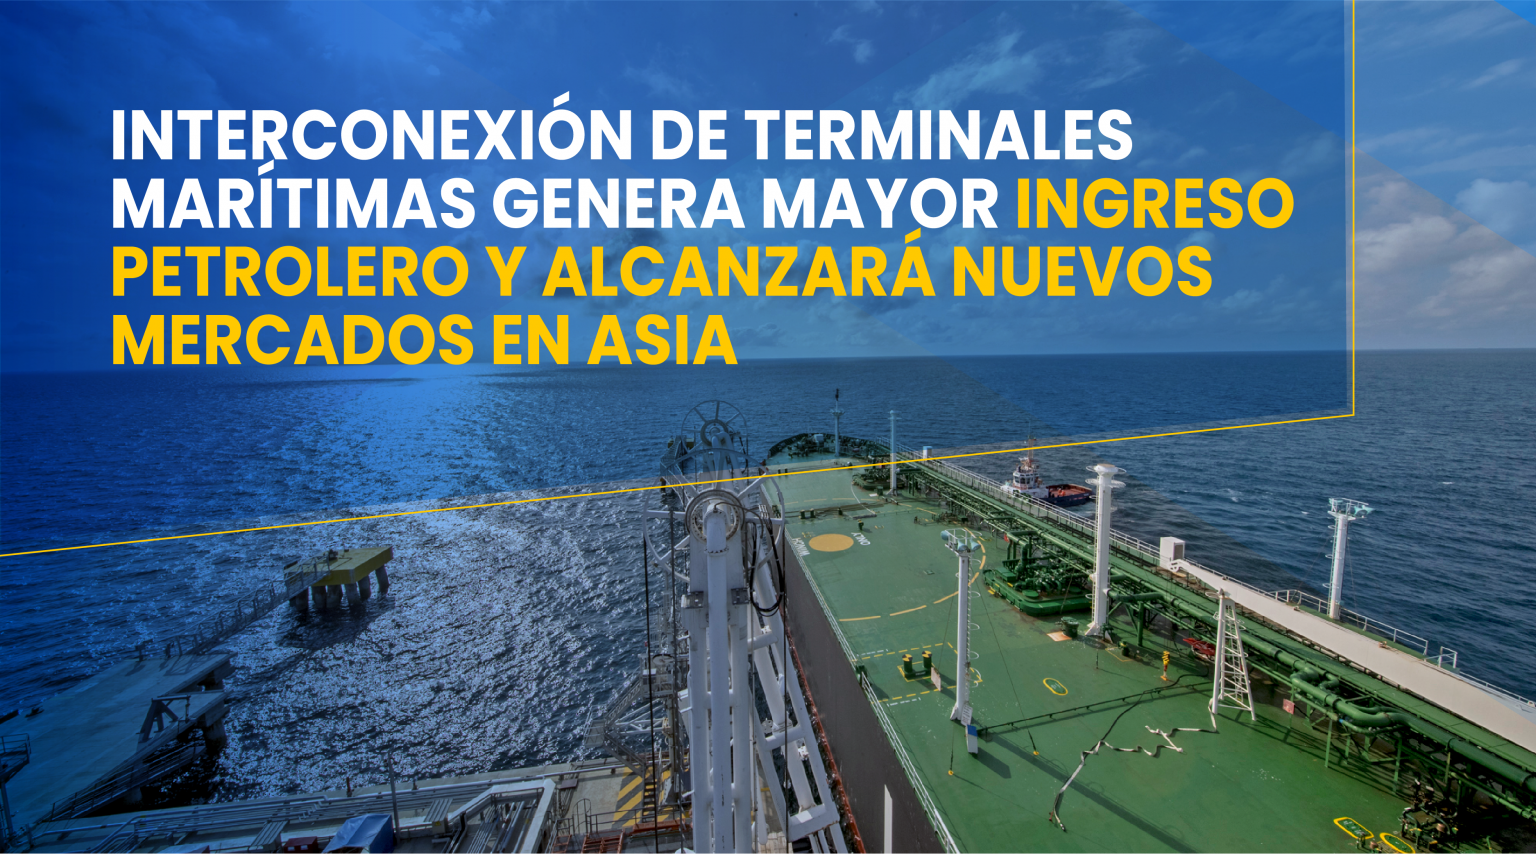 Interconnection of the maritime terminals of EP Petroecuador and OCP will generate greater oil income and will reach new markets in Asia